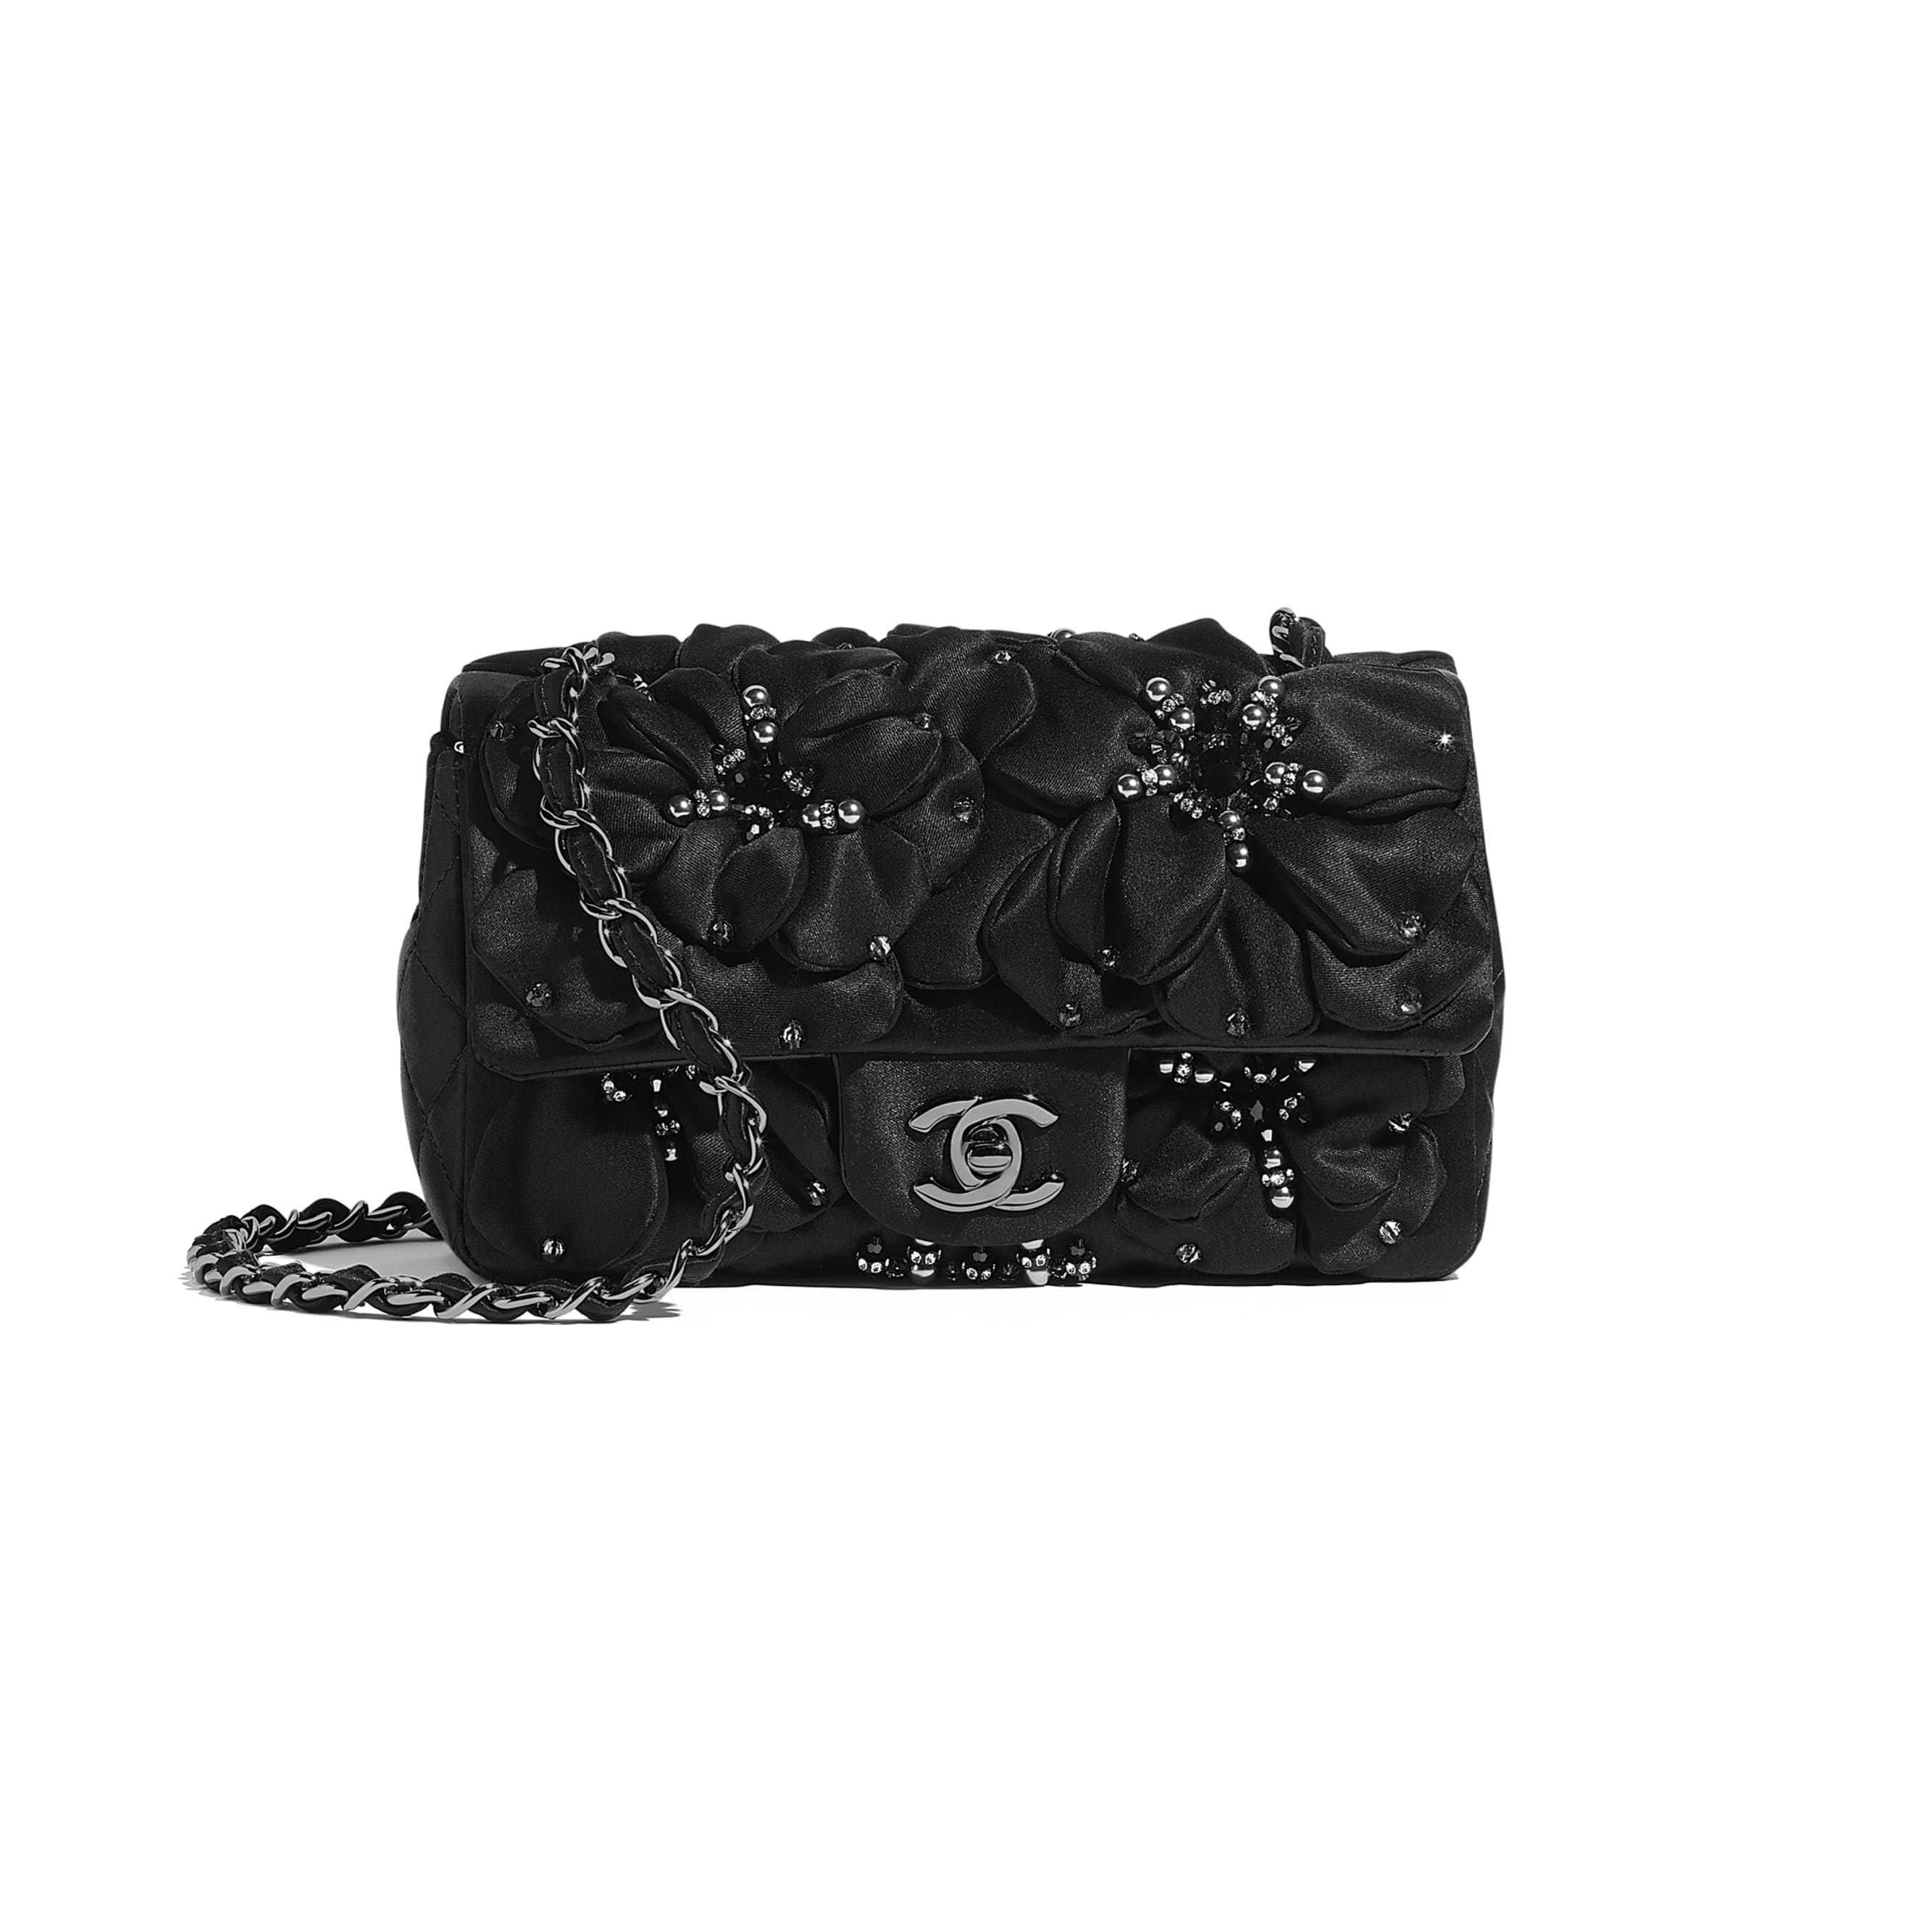 Mini Flap Bag - Black - Satin, Diamanté & Ruthenium-Finish Metal - CHANEL - Default view - see standard sized version